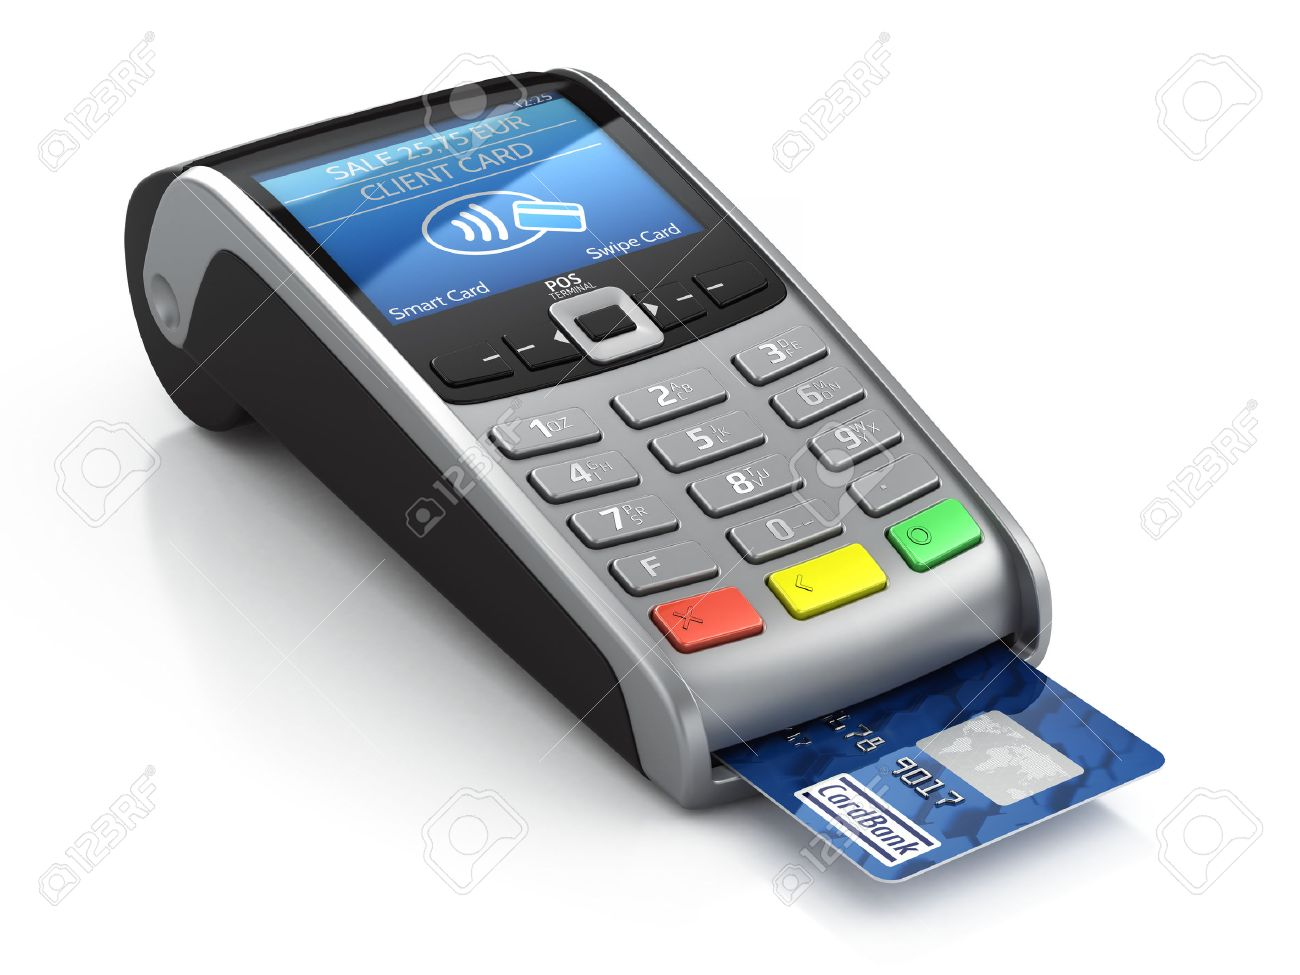 Photo of POS leads e-payment transactions with 286m deals